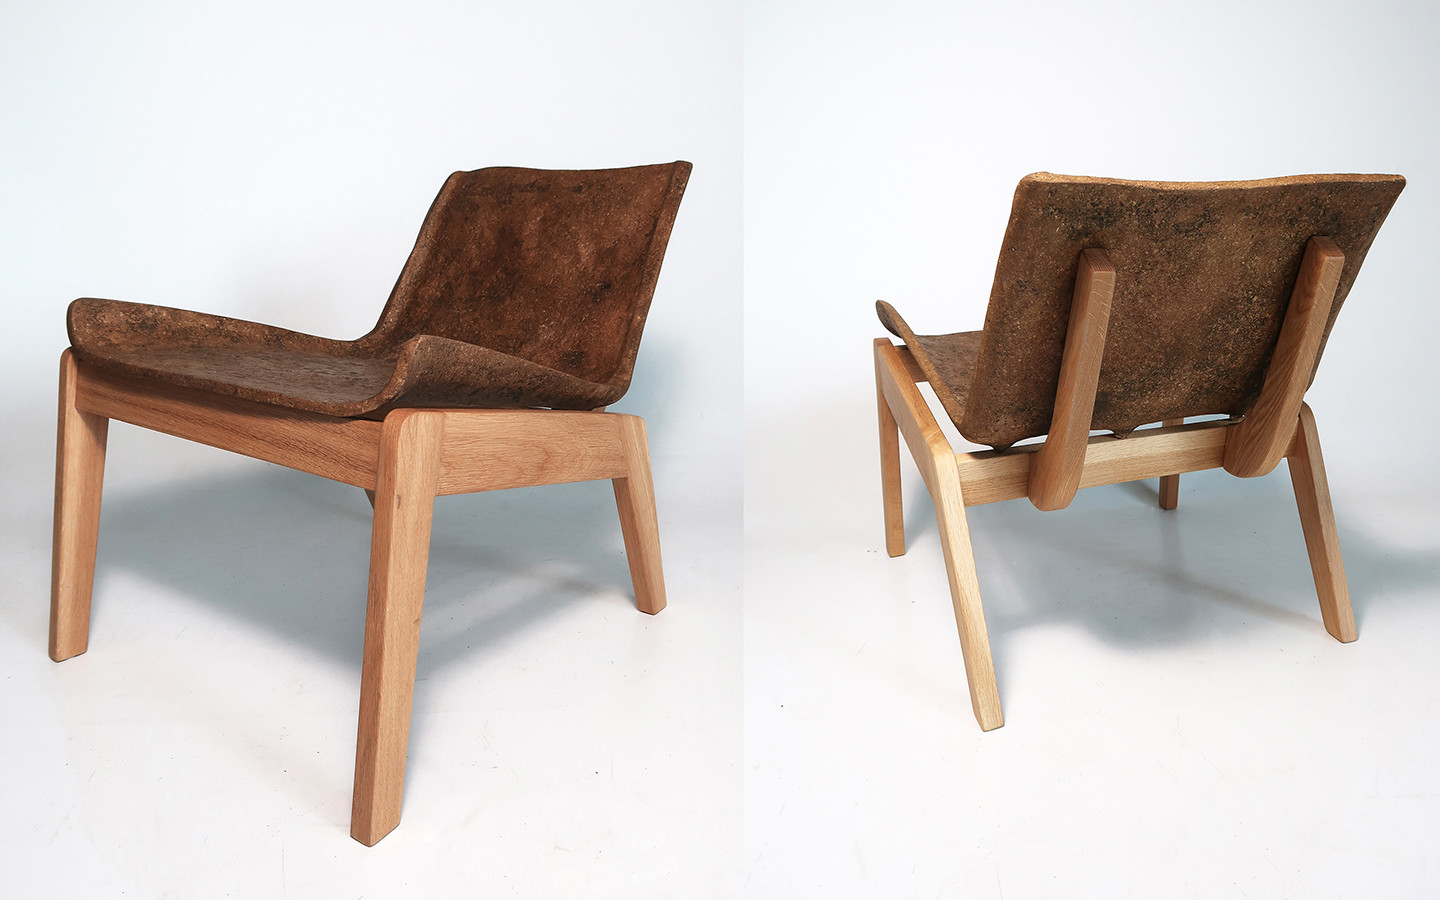 Residue Chair